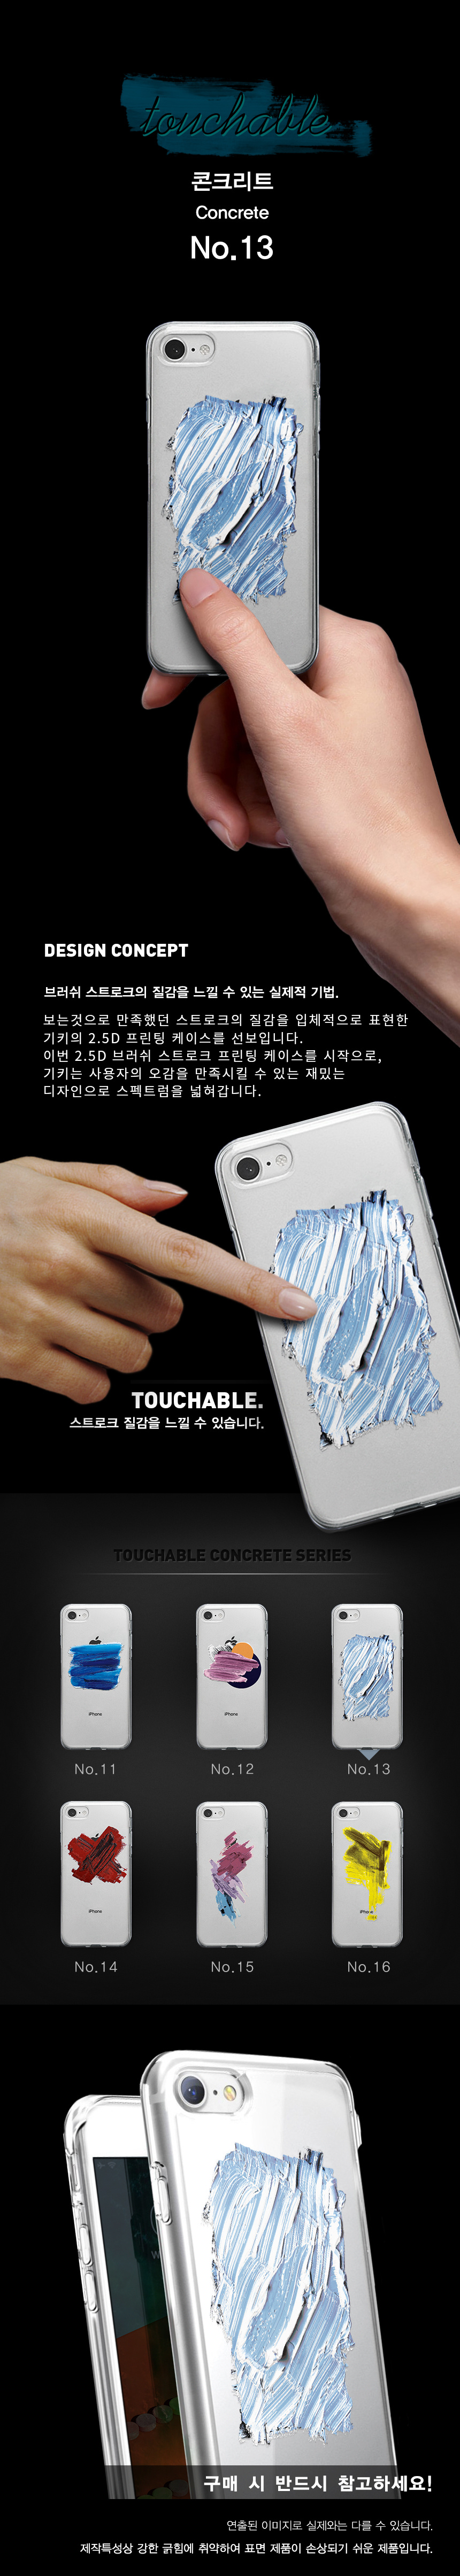 기키(GEEKY) [투명] phone case concrete no.13